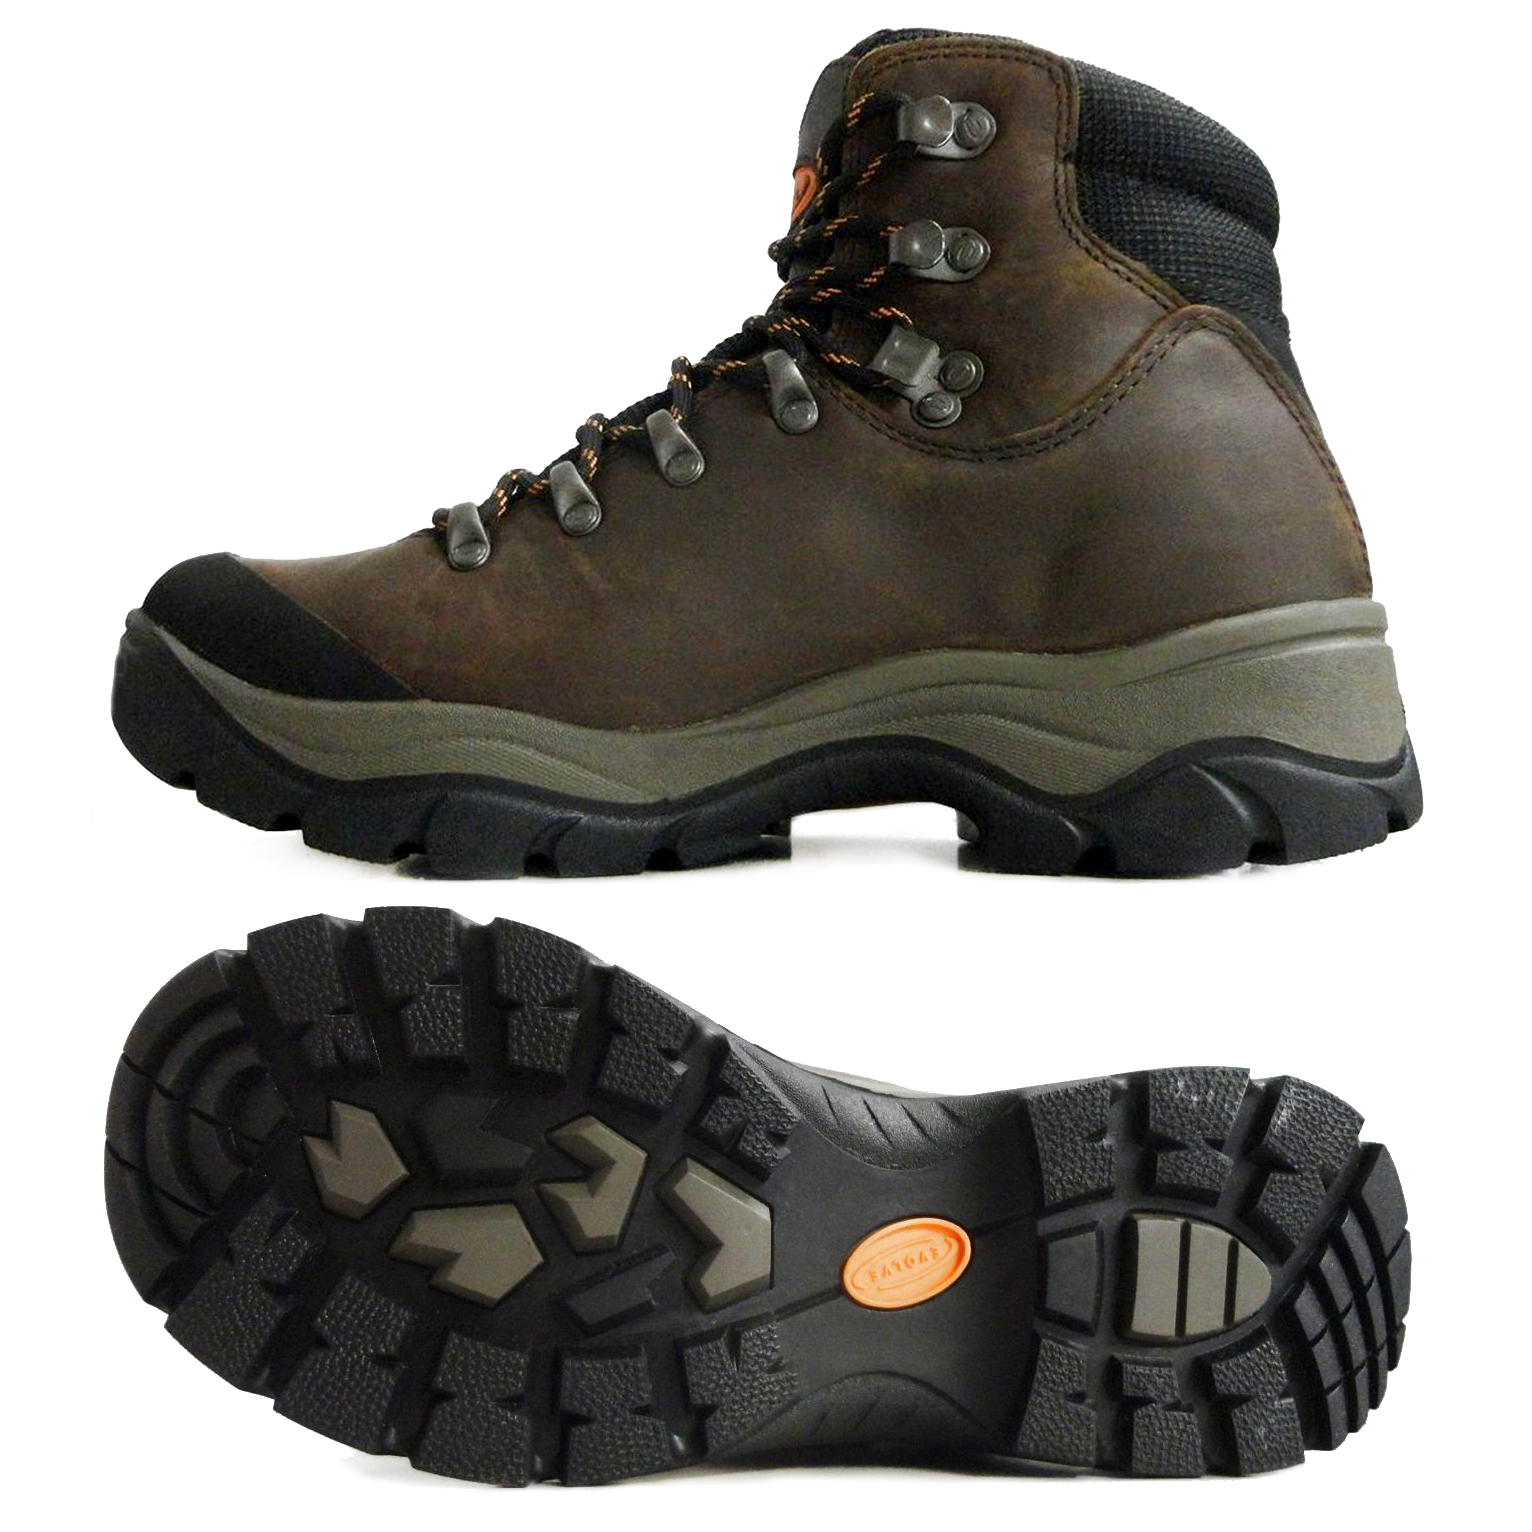 1881ab20863 Survive the Elements: Evolve Outdoors Fallow Leather Boots